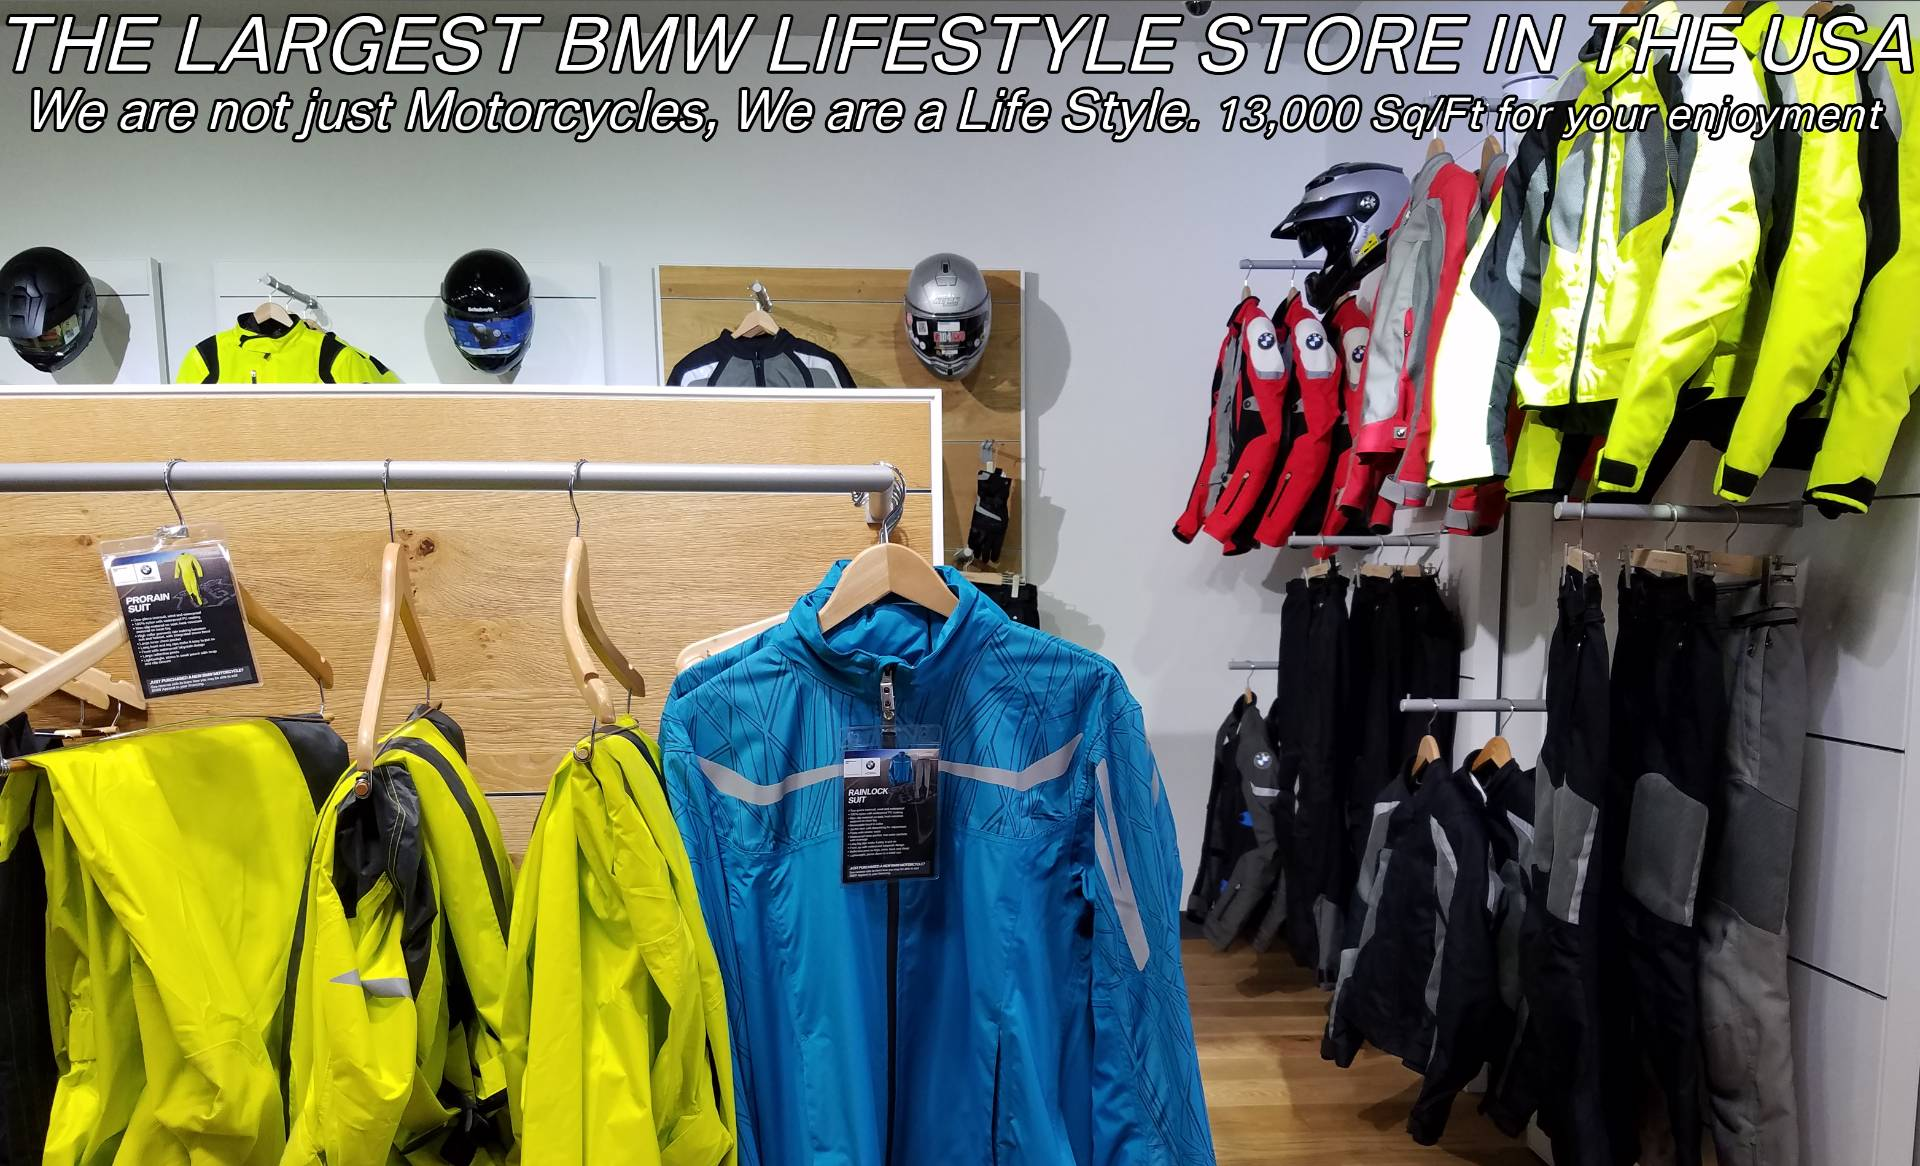 New 2019 BMW R 1250 GS for sale, New BMW for sale R 1250GS, New BMW Motorcycle R1250GS for sale, new BMW 1250GS, R1250GS, GS. BMW Motorcycles of Miami, Motorcycles of Miami, Motorcycles Miami, New Motorcycles, Used Motorcycles, pre-owned. #BMWMotorcyclesOfMiami #MotorcyclesOfMiami. - Photo 47